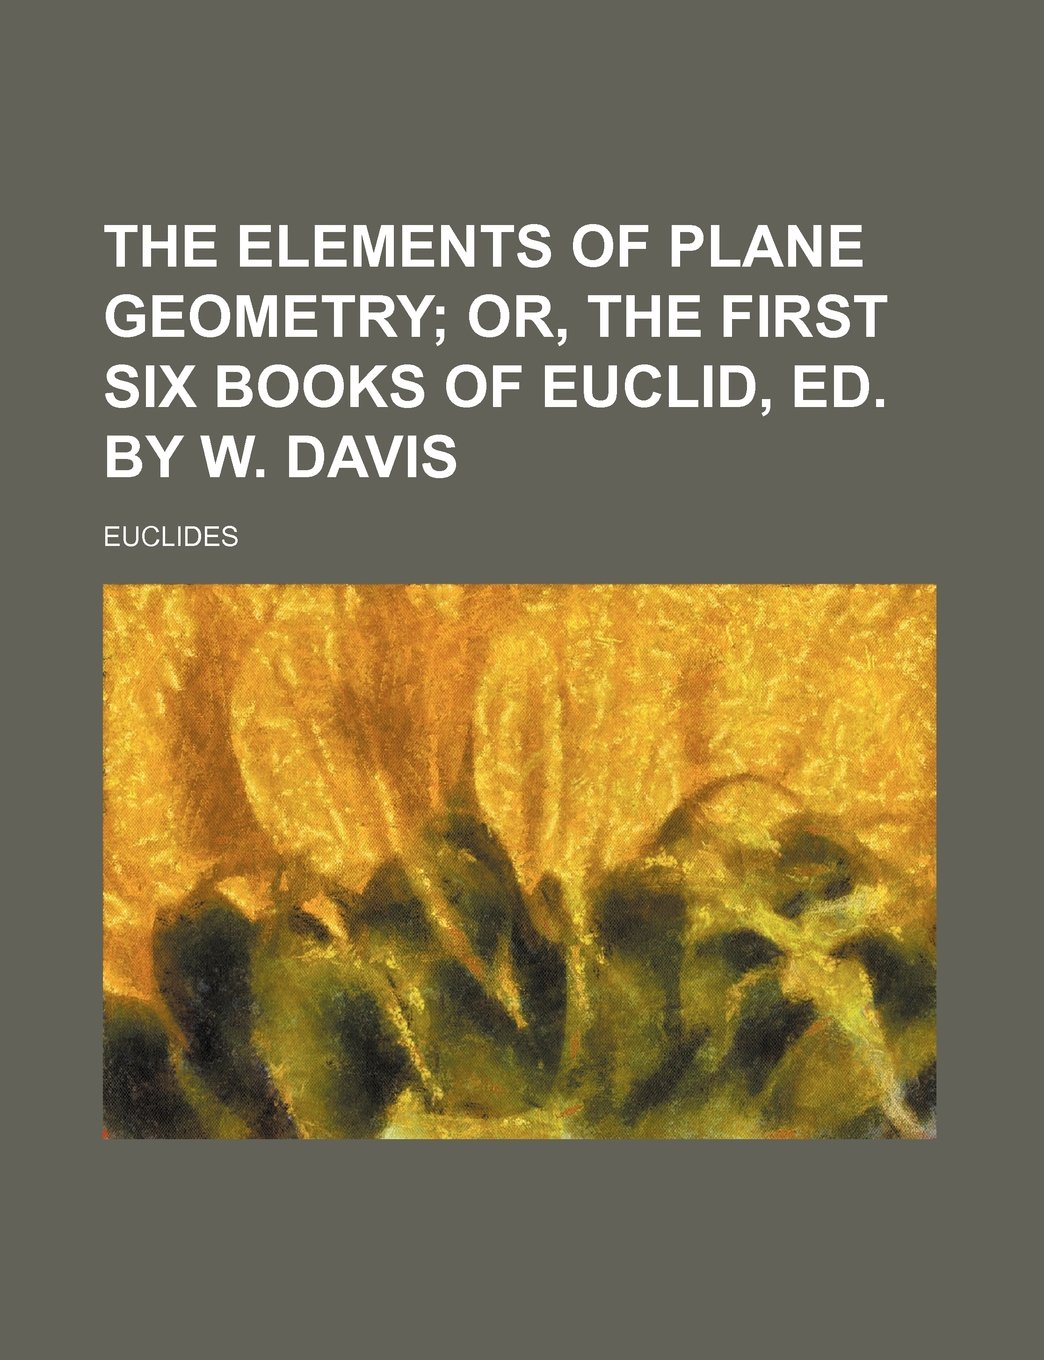 The Elements of Plane Geometry